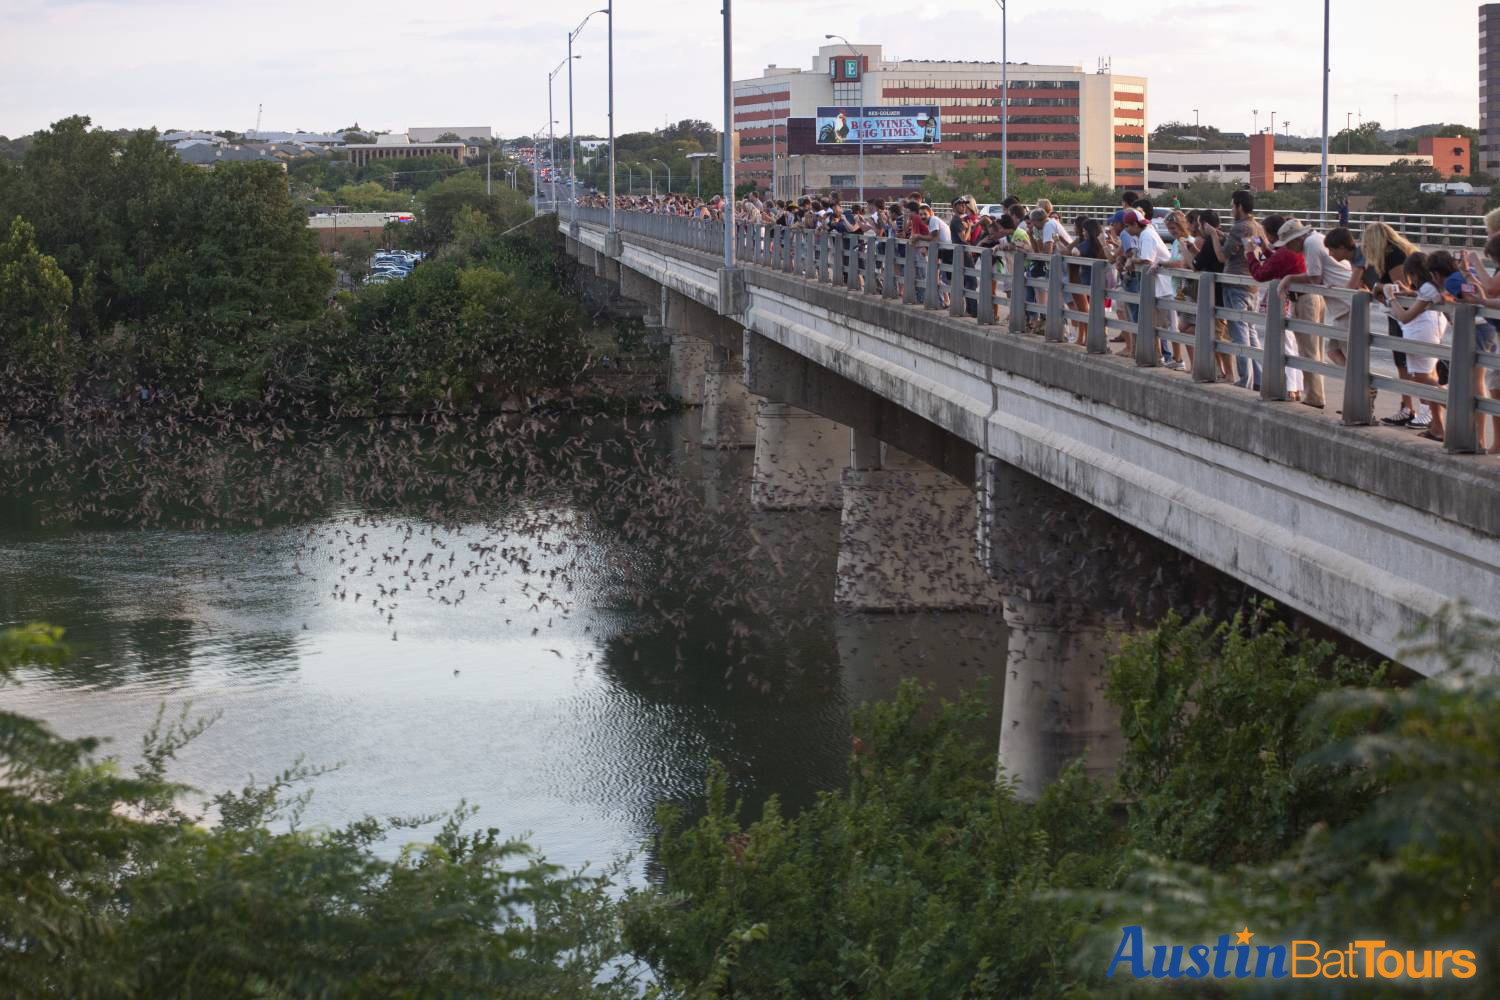 Austin's famous colony of mexican freetail bats fly out of the Ann W. Richards Congress Avenue Bridge